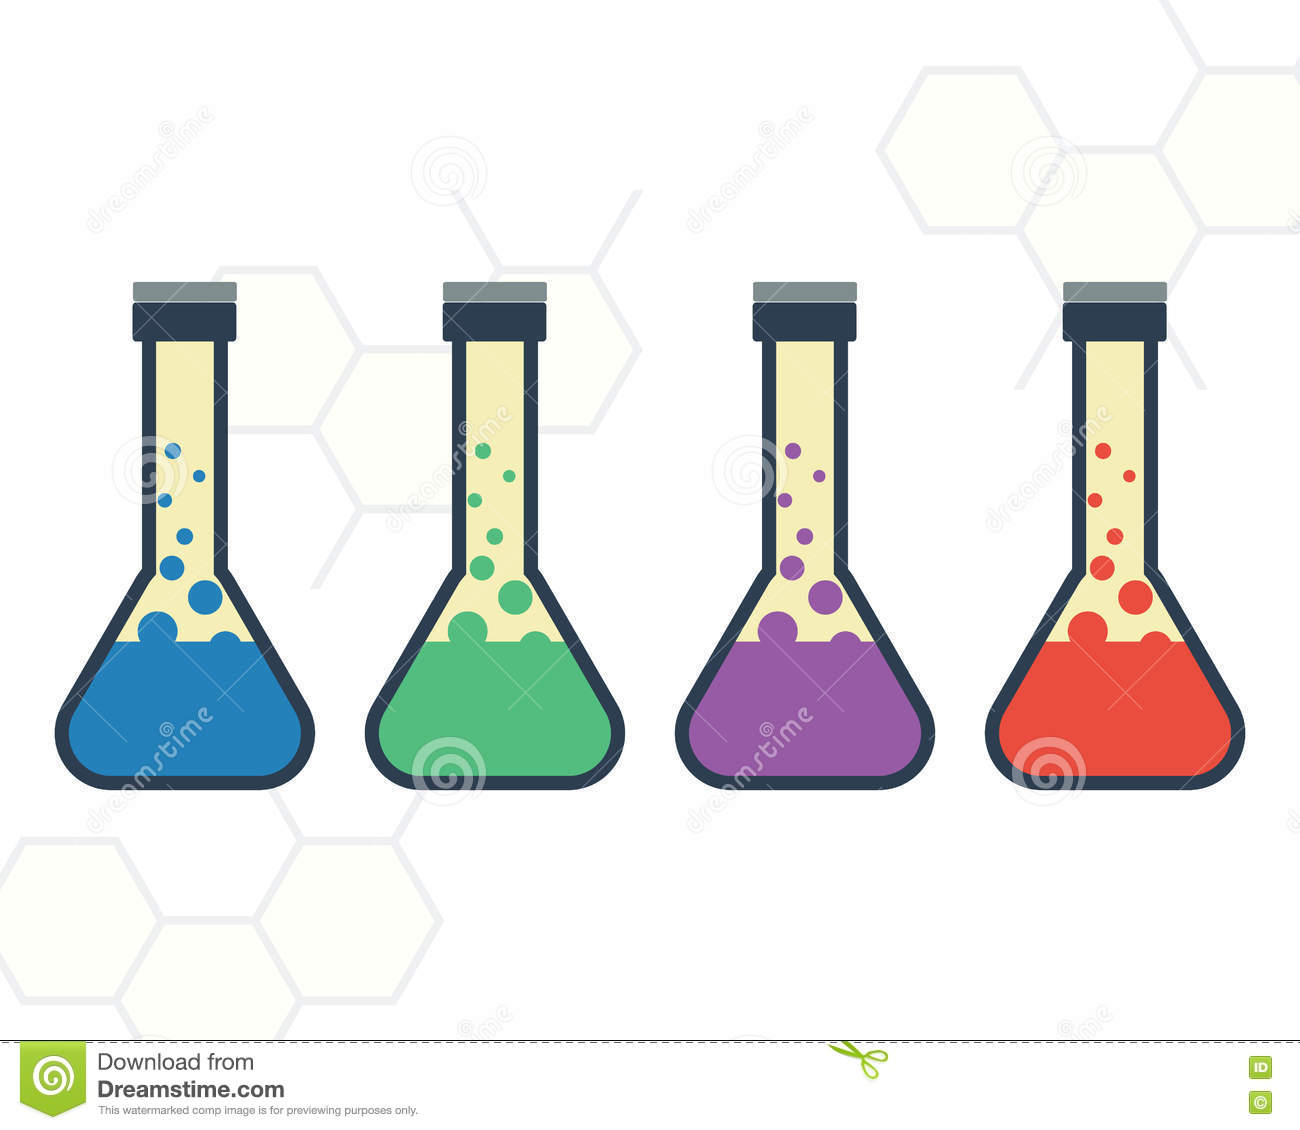 volumetric flask stock illustration. illustration of equipment